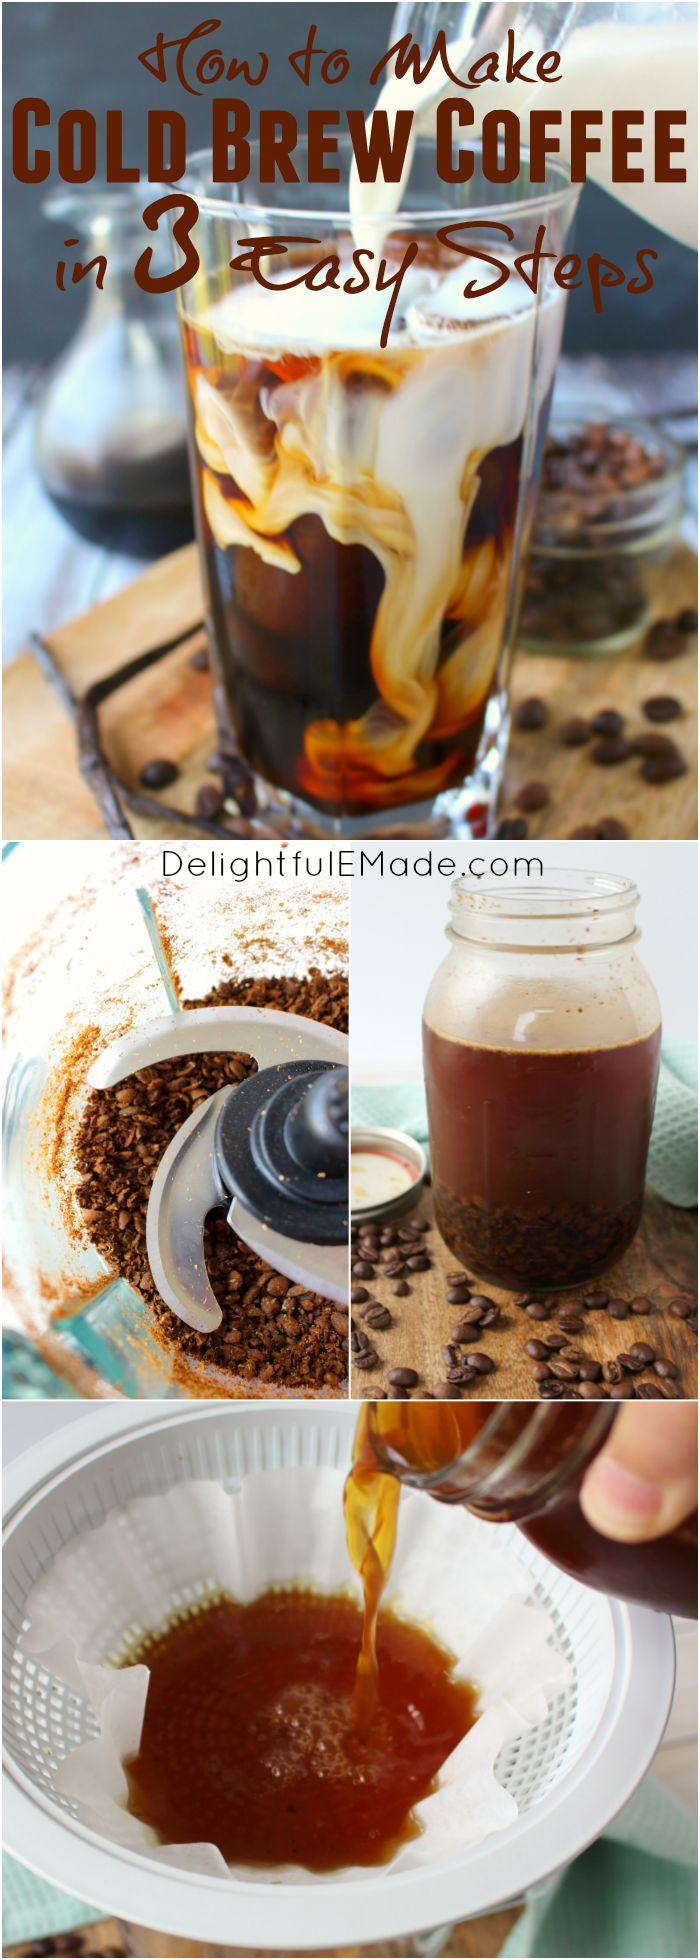 How to Make Cold Brew Coffee in 3 Easy Steps